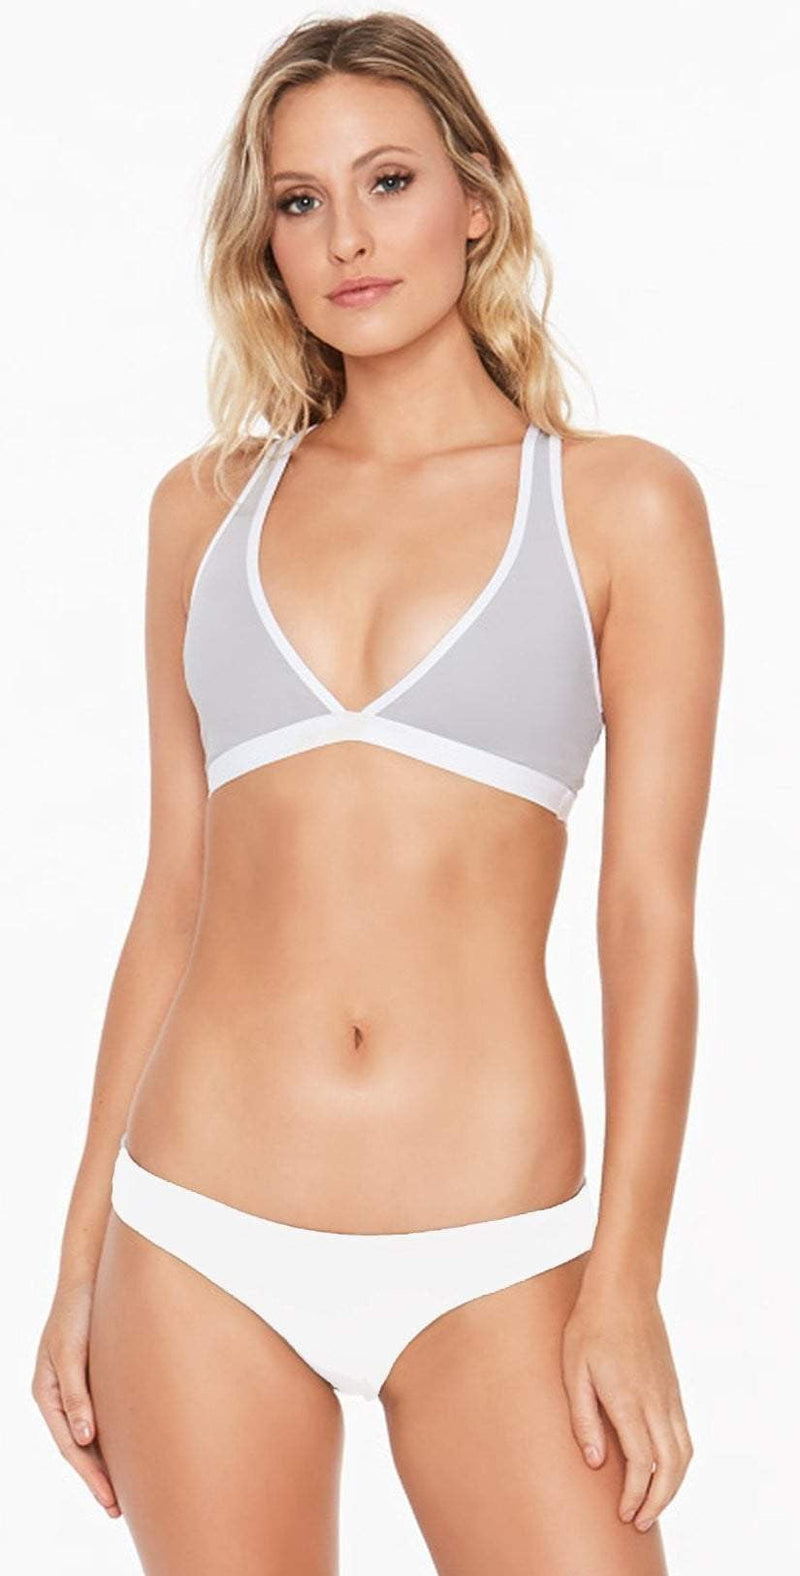 L Space Skylar Top in Fog Grey LASKT17-FGY: